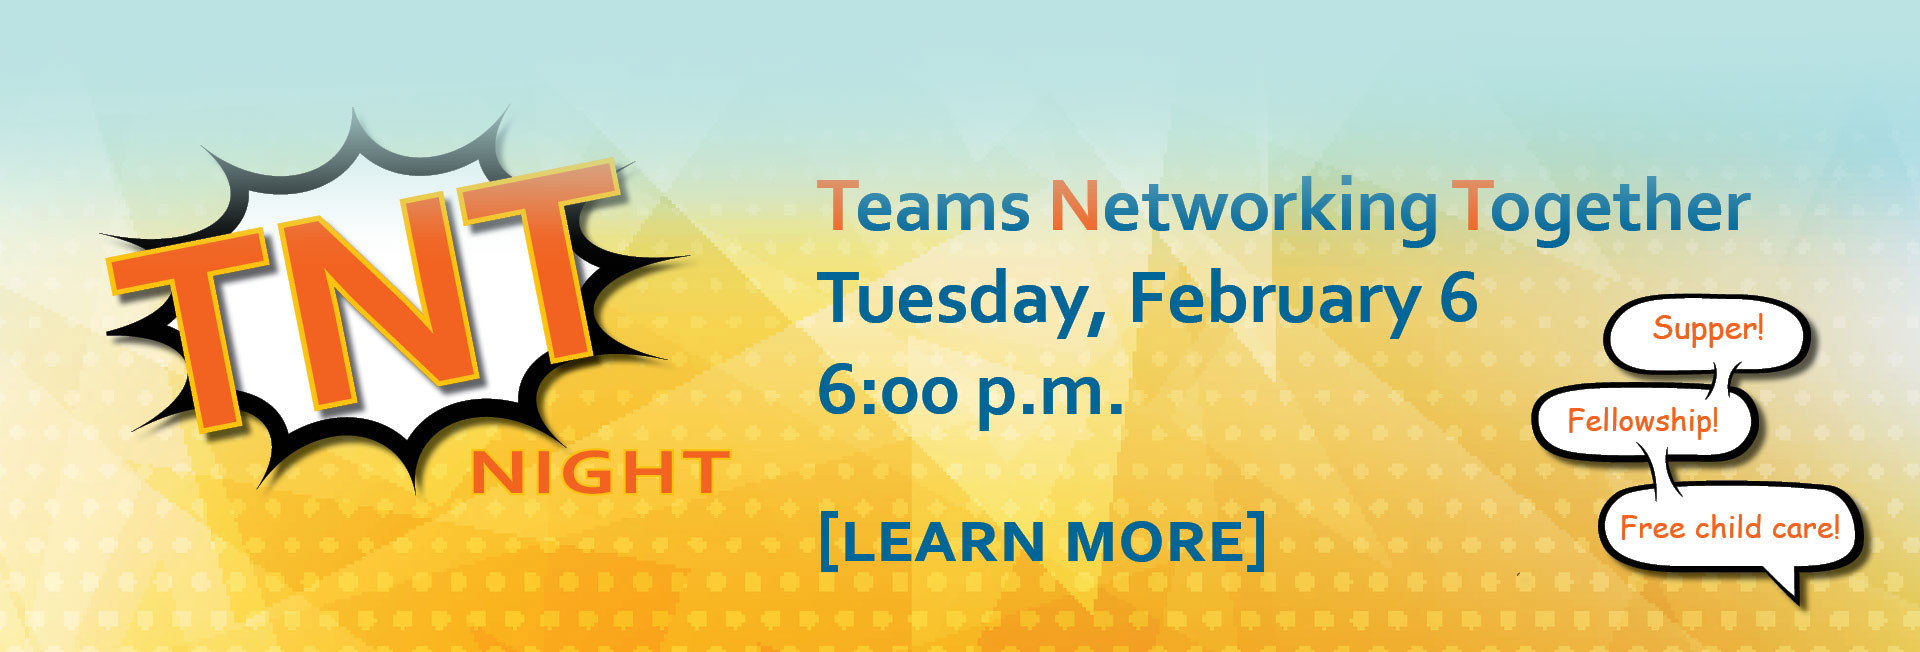 Teams Networking Together - Tuesday, February 6 - Starts at 6pm